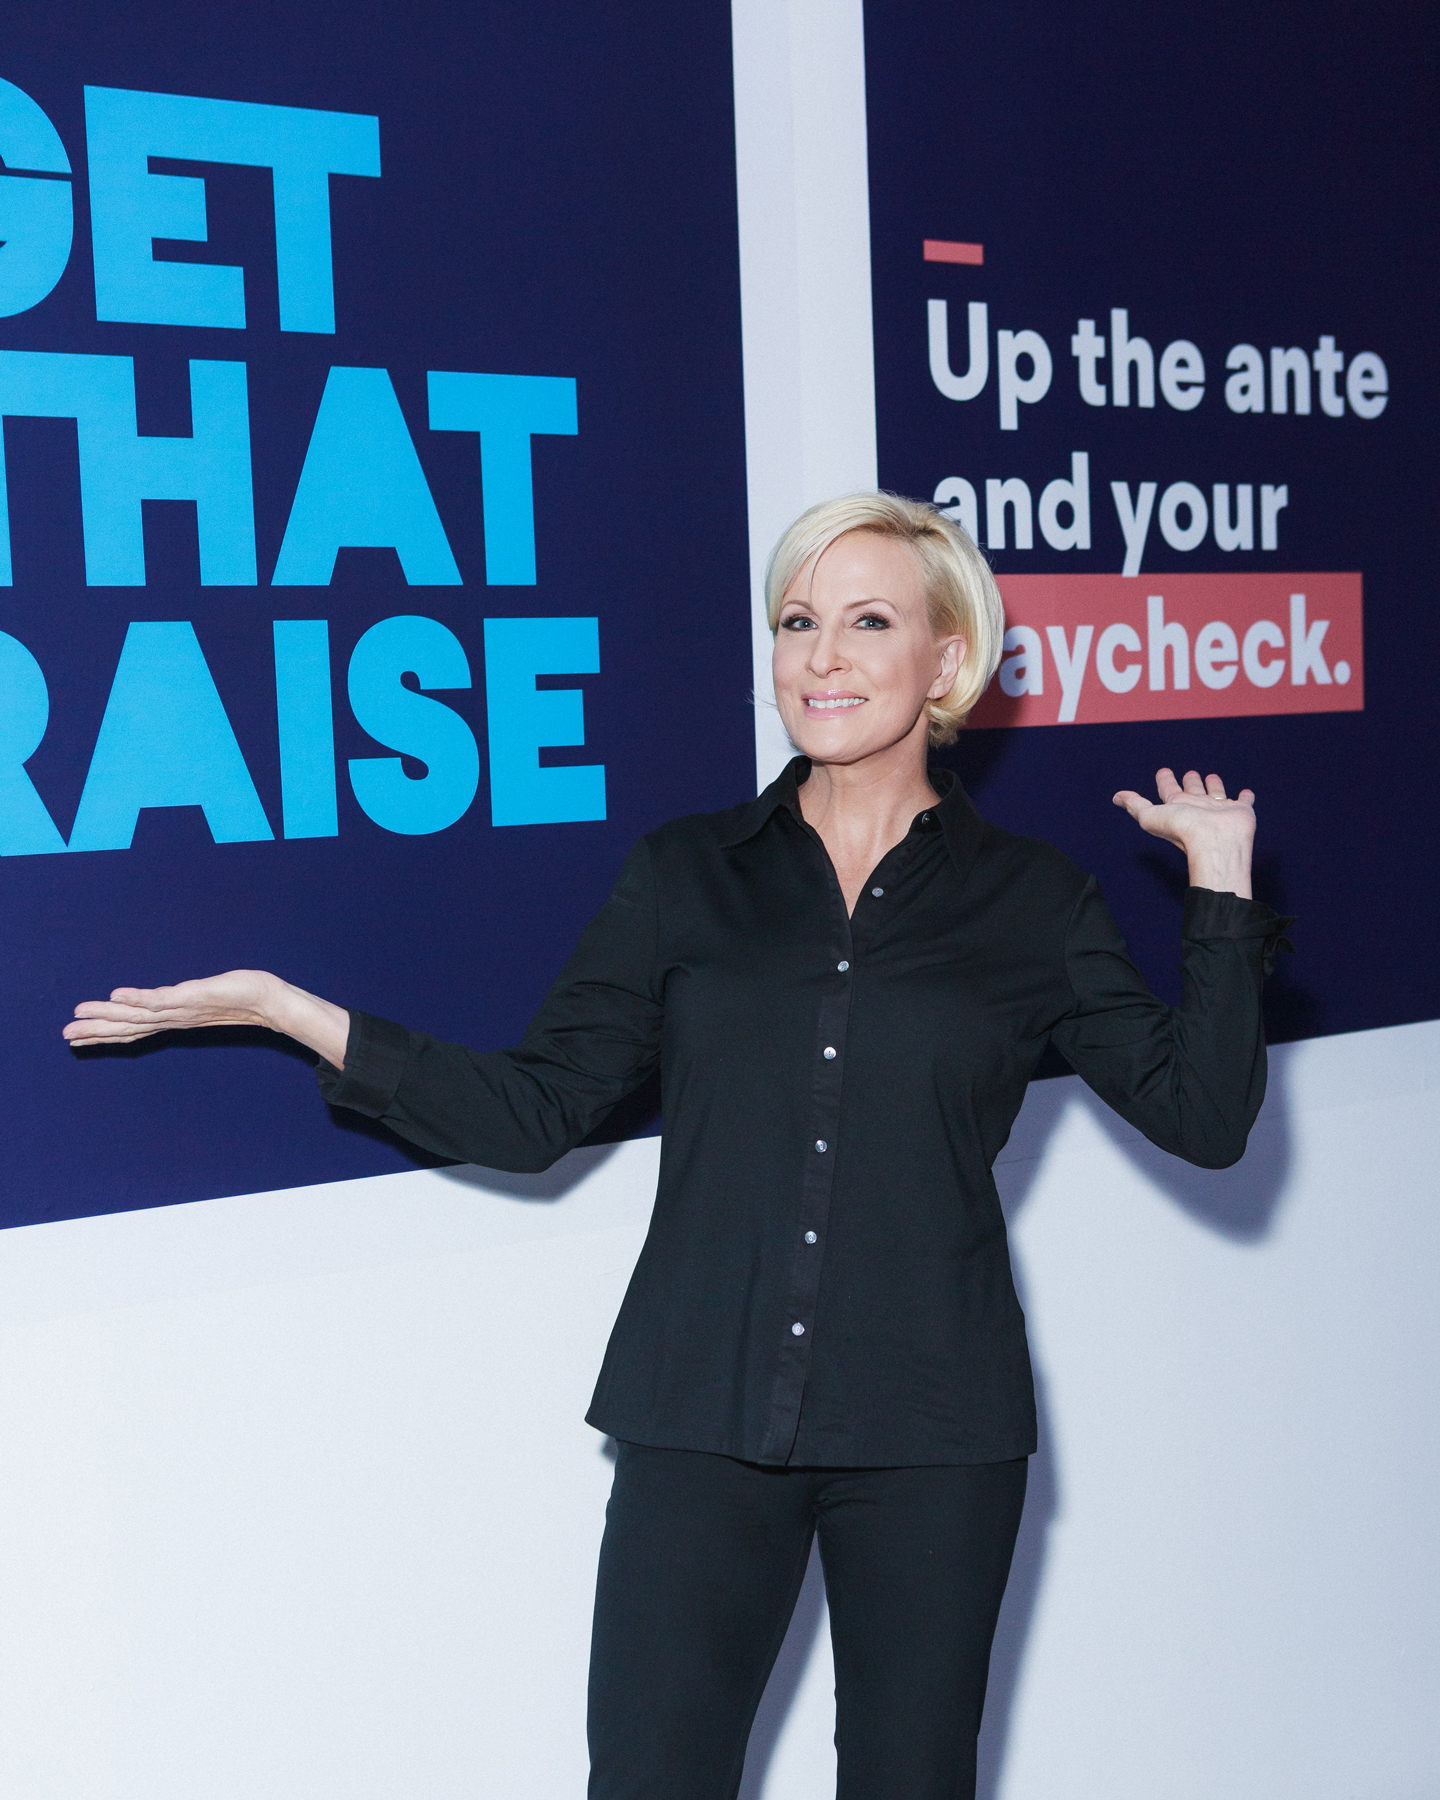 Mika Brzezinski at SoFi Get That Raise event